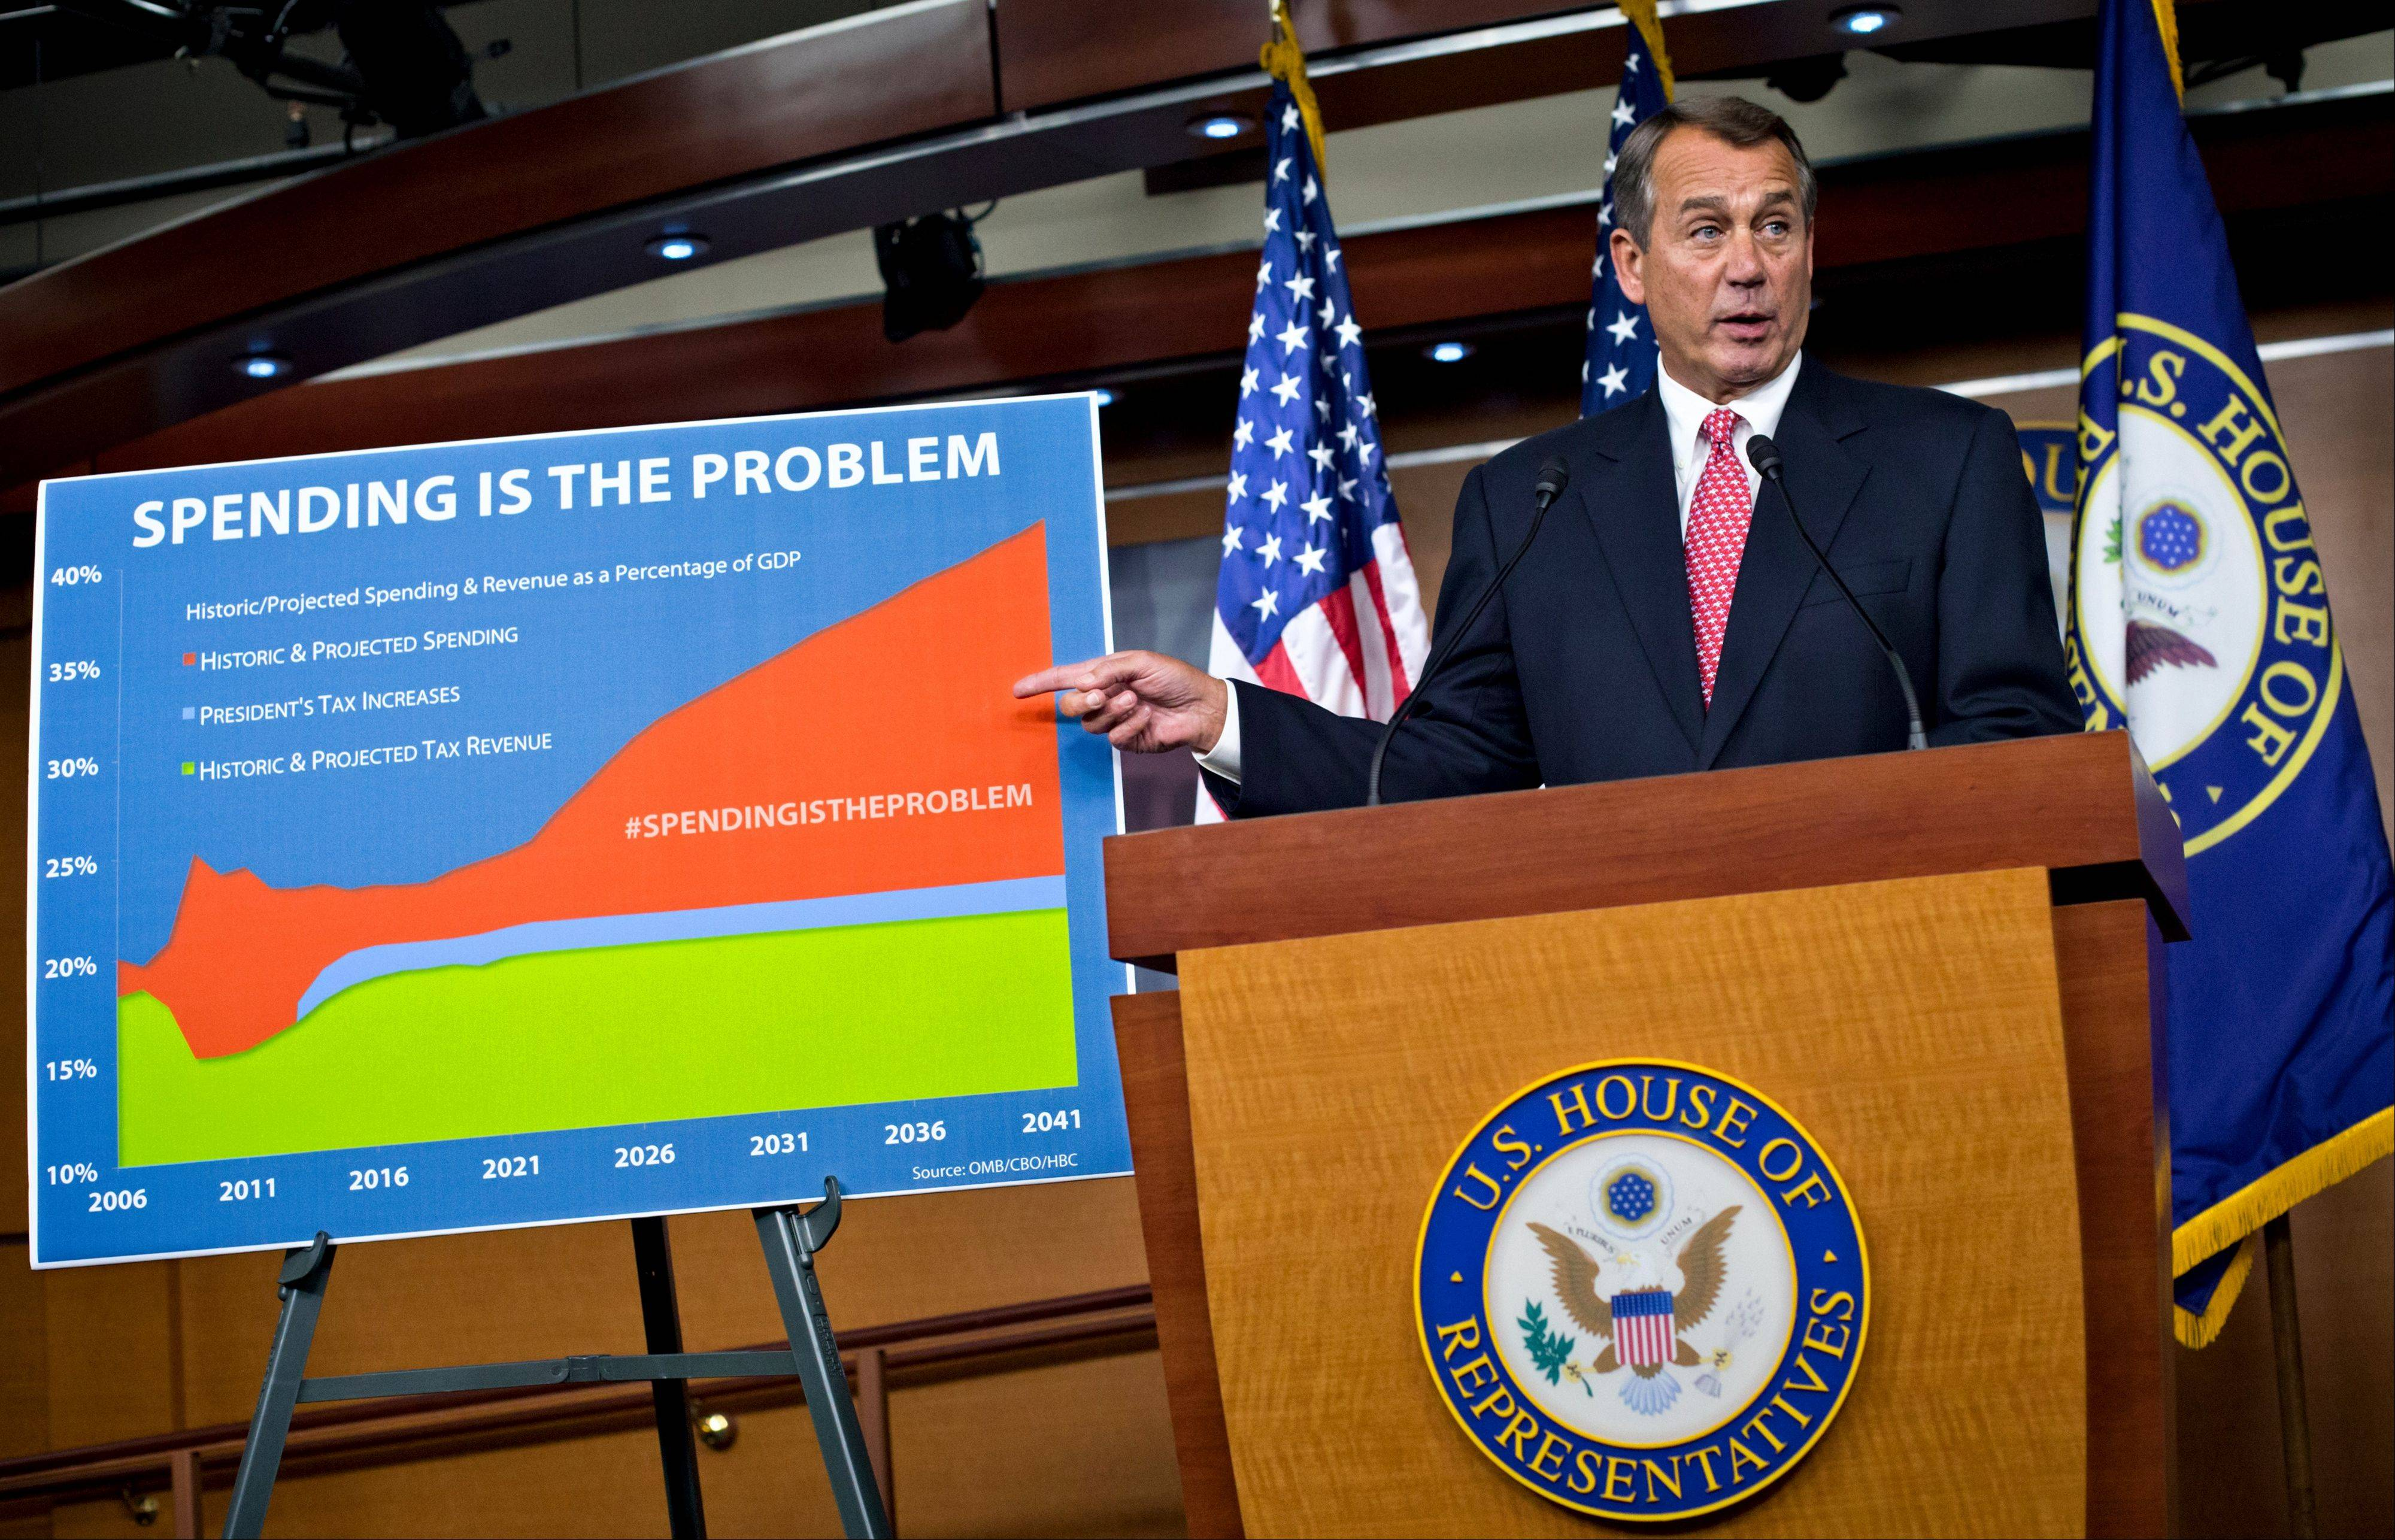 House Speaker John Boehner accuses President Barack Obama of not being serious about cutting government spending during a Capitol Hill news conference in Washington on Dec. 13. Lawmakers and the president are on the brink of yet another compromise-or-else deadline Friday.